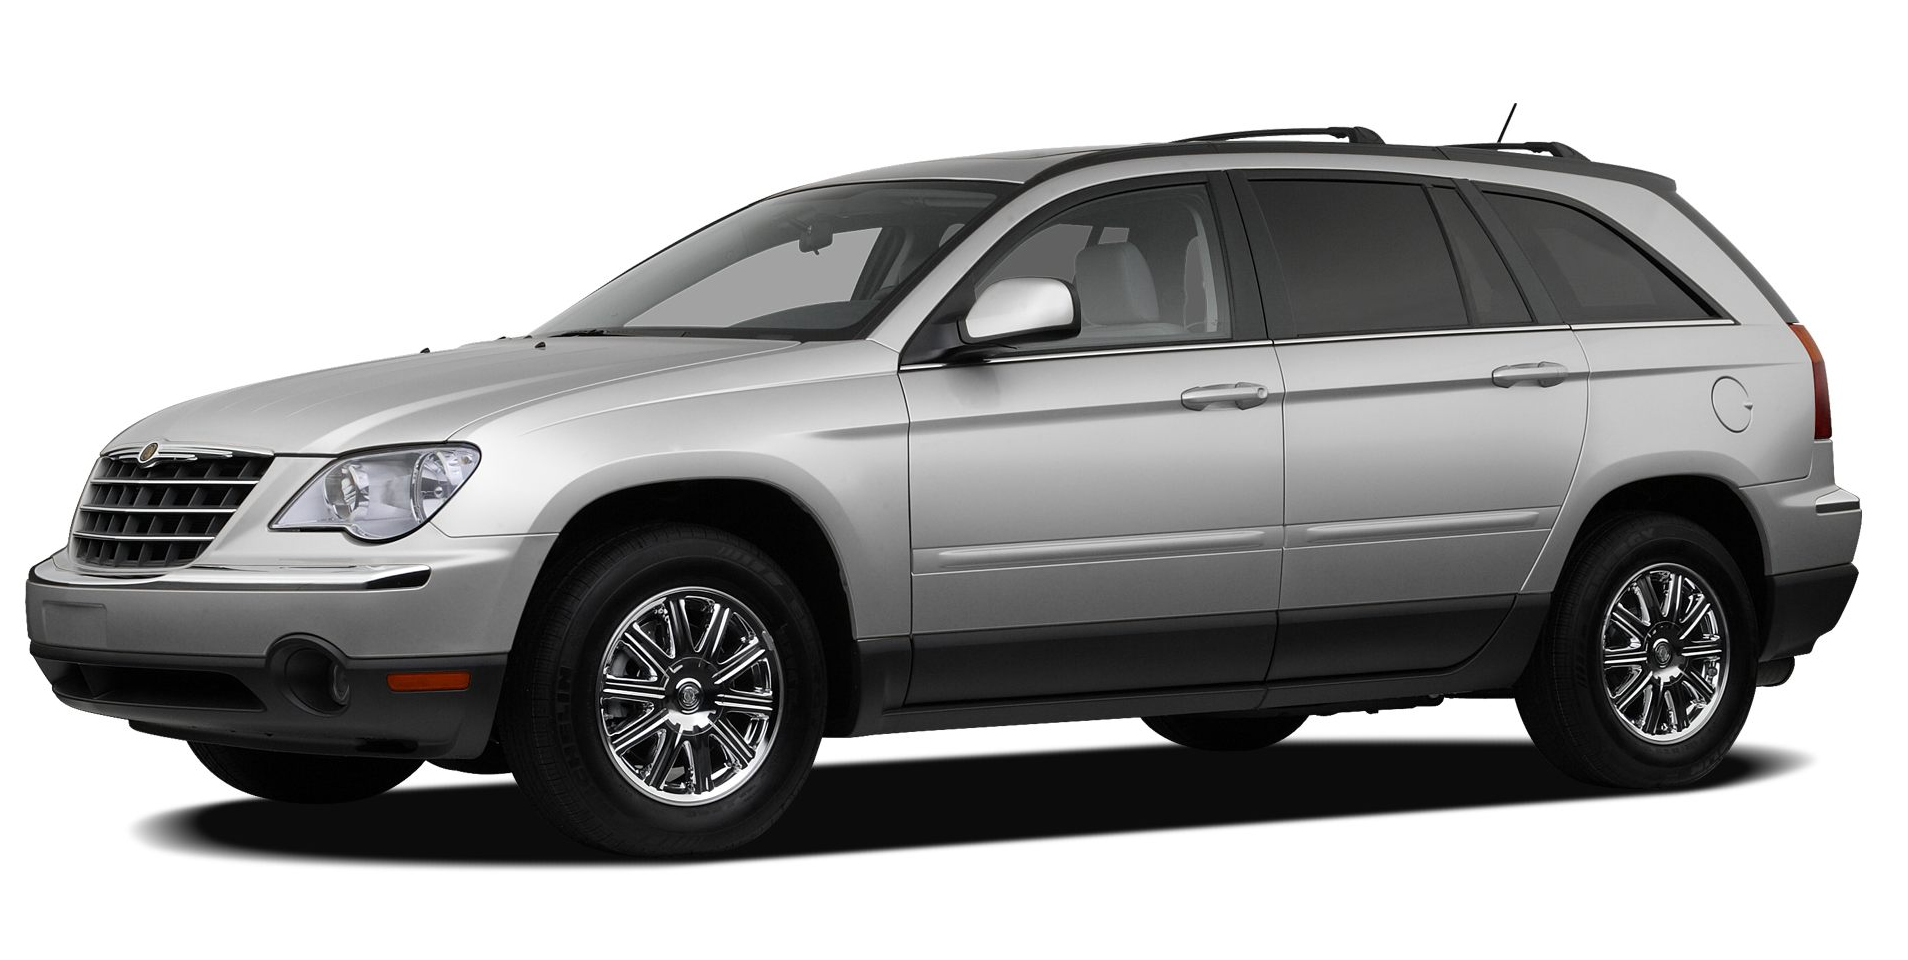 Find Tipms For 2007 Chrysler Vehicles Tipms And Repairs